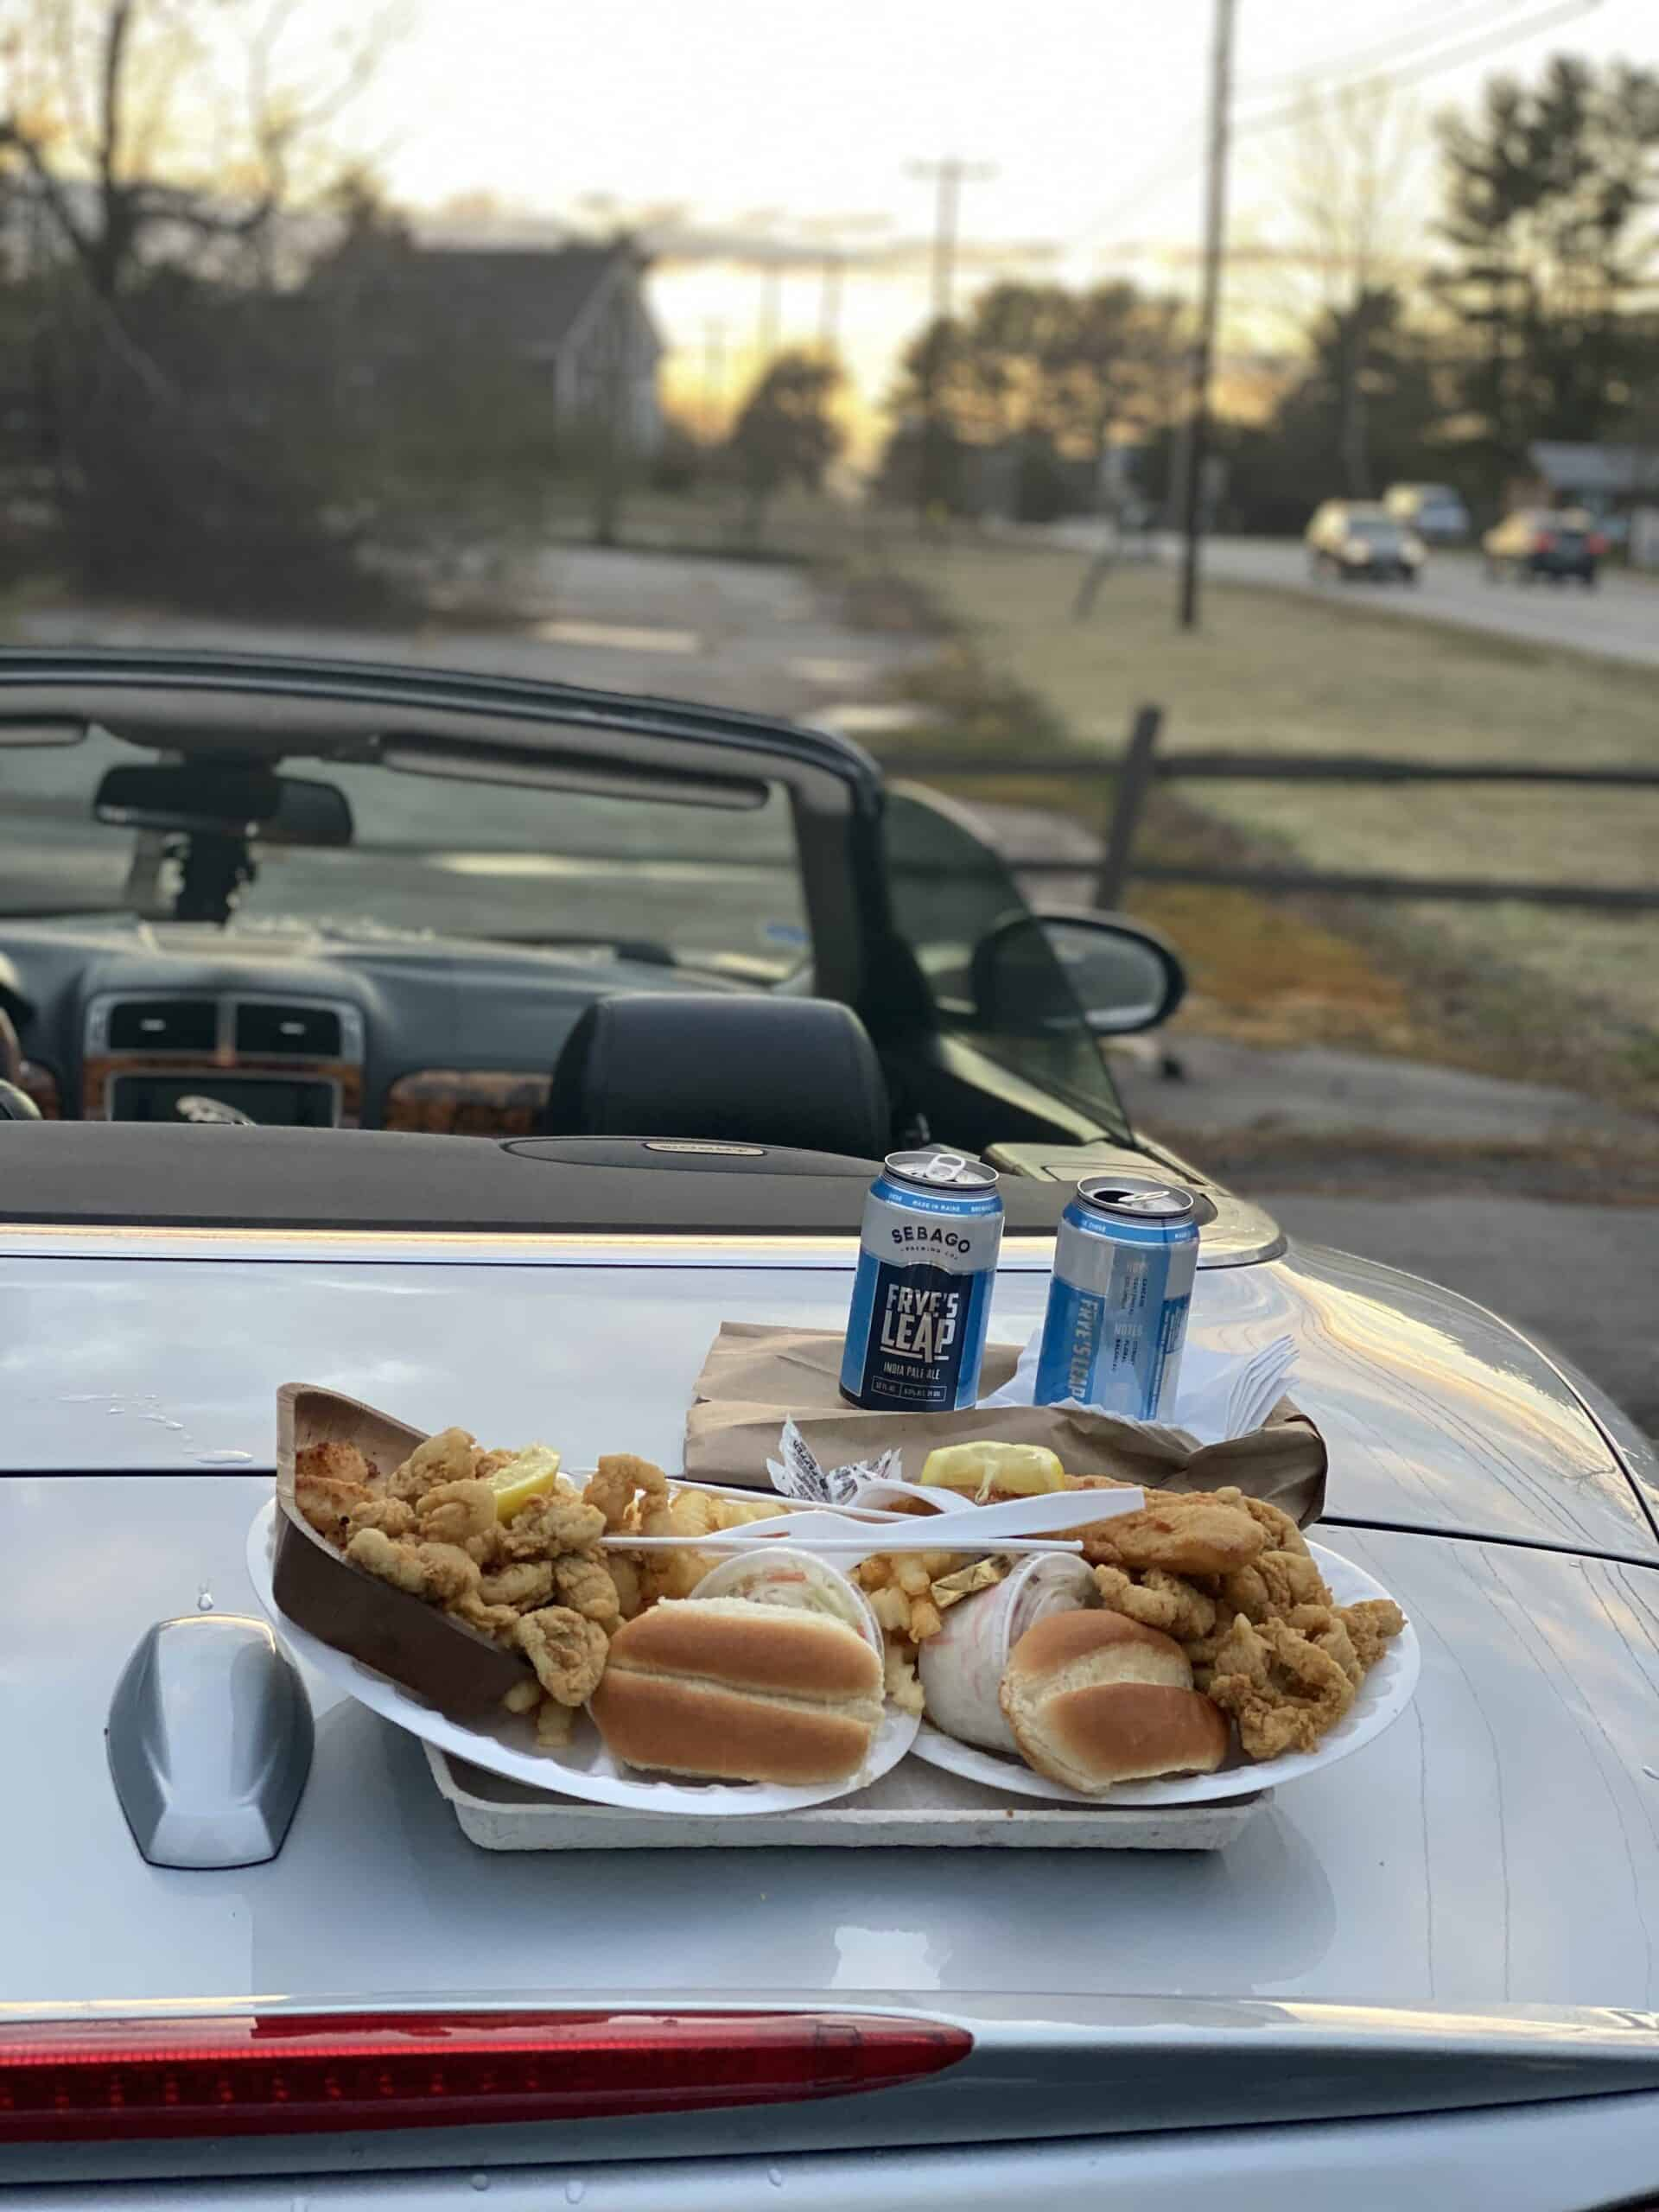 lobster pounds in maine - image of fried seafood and cans of beer on the hood of a convertible, sunset